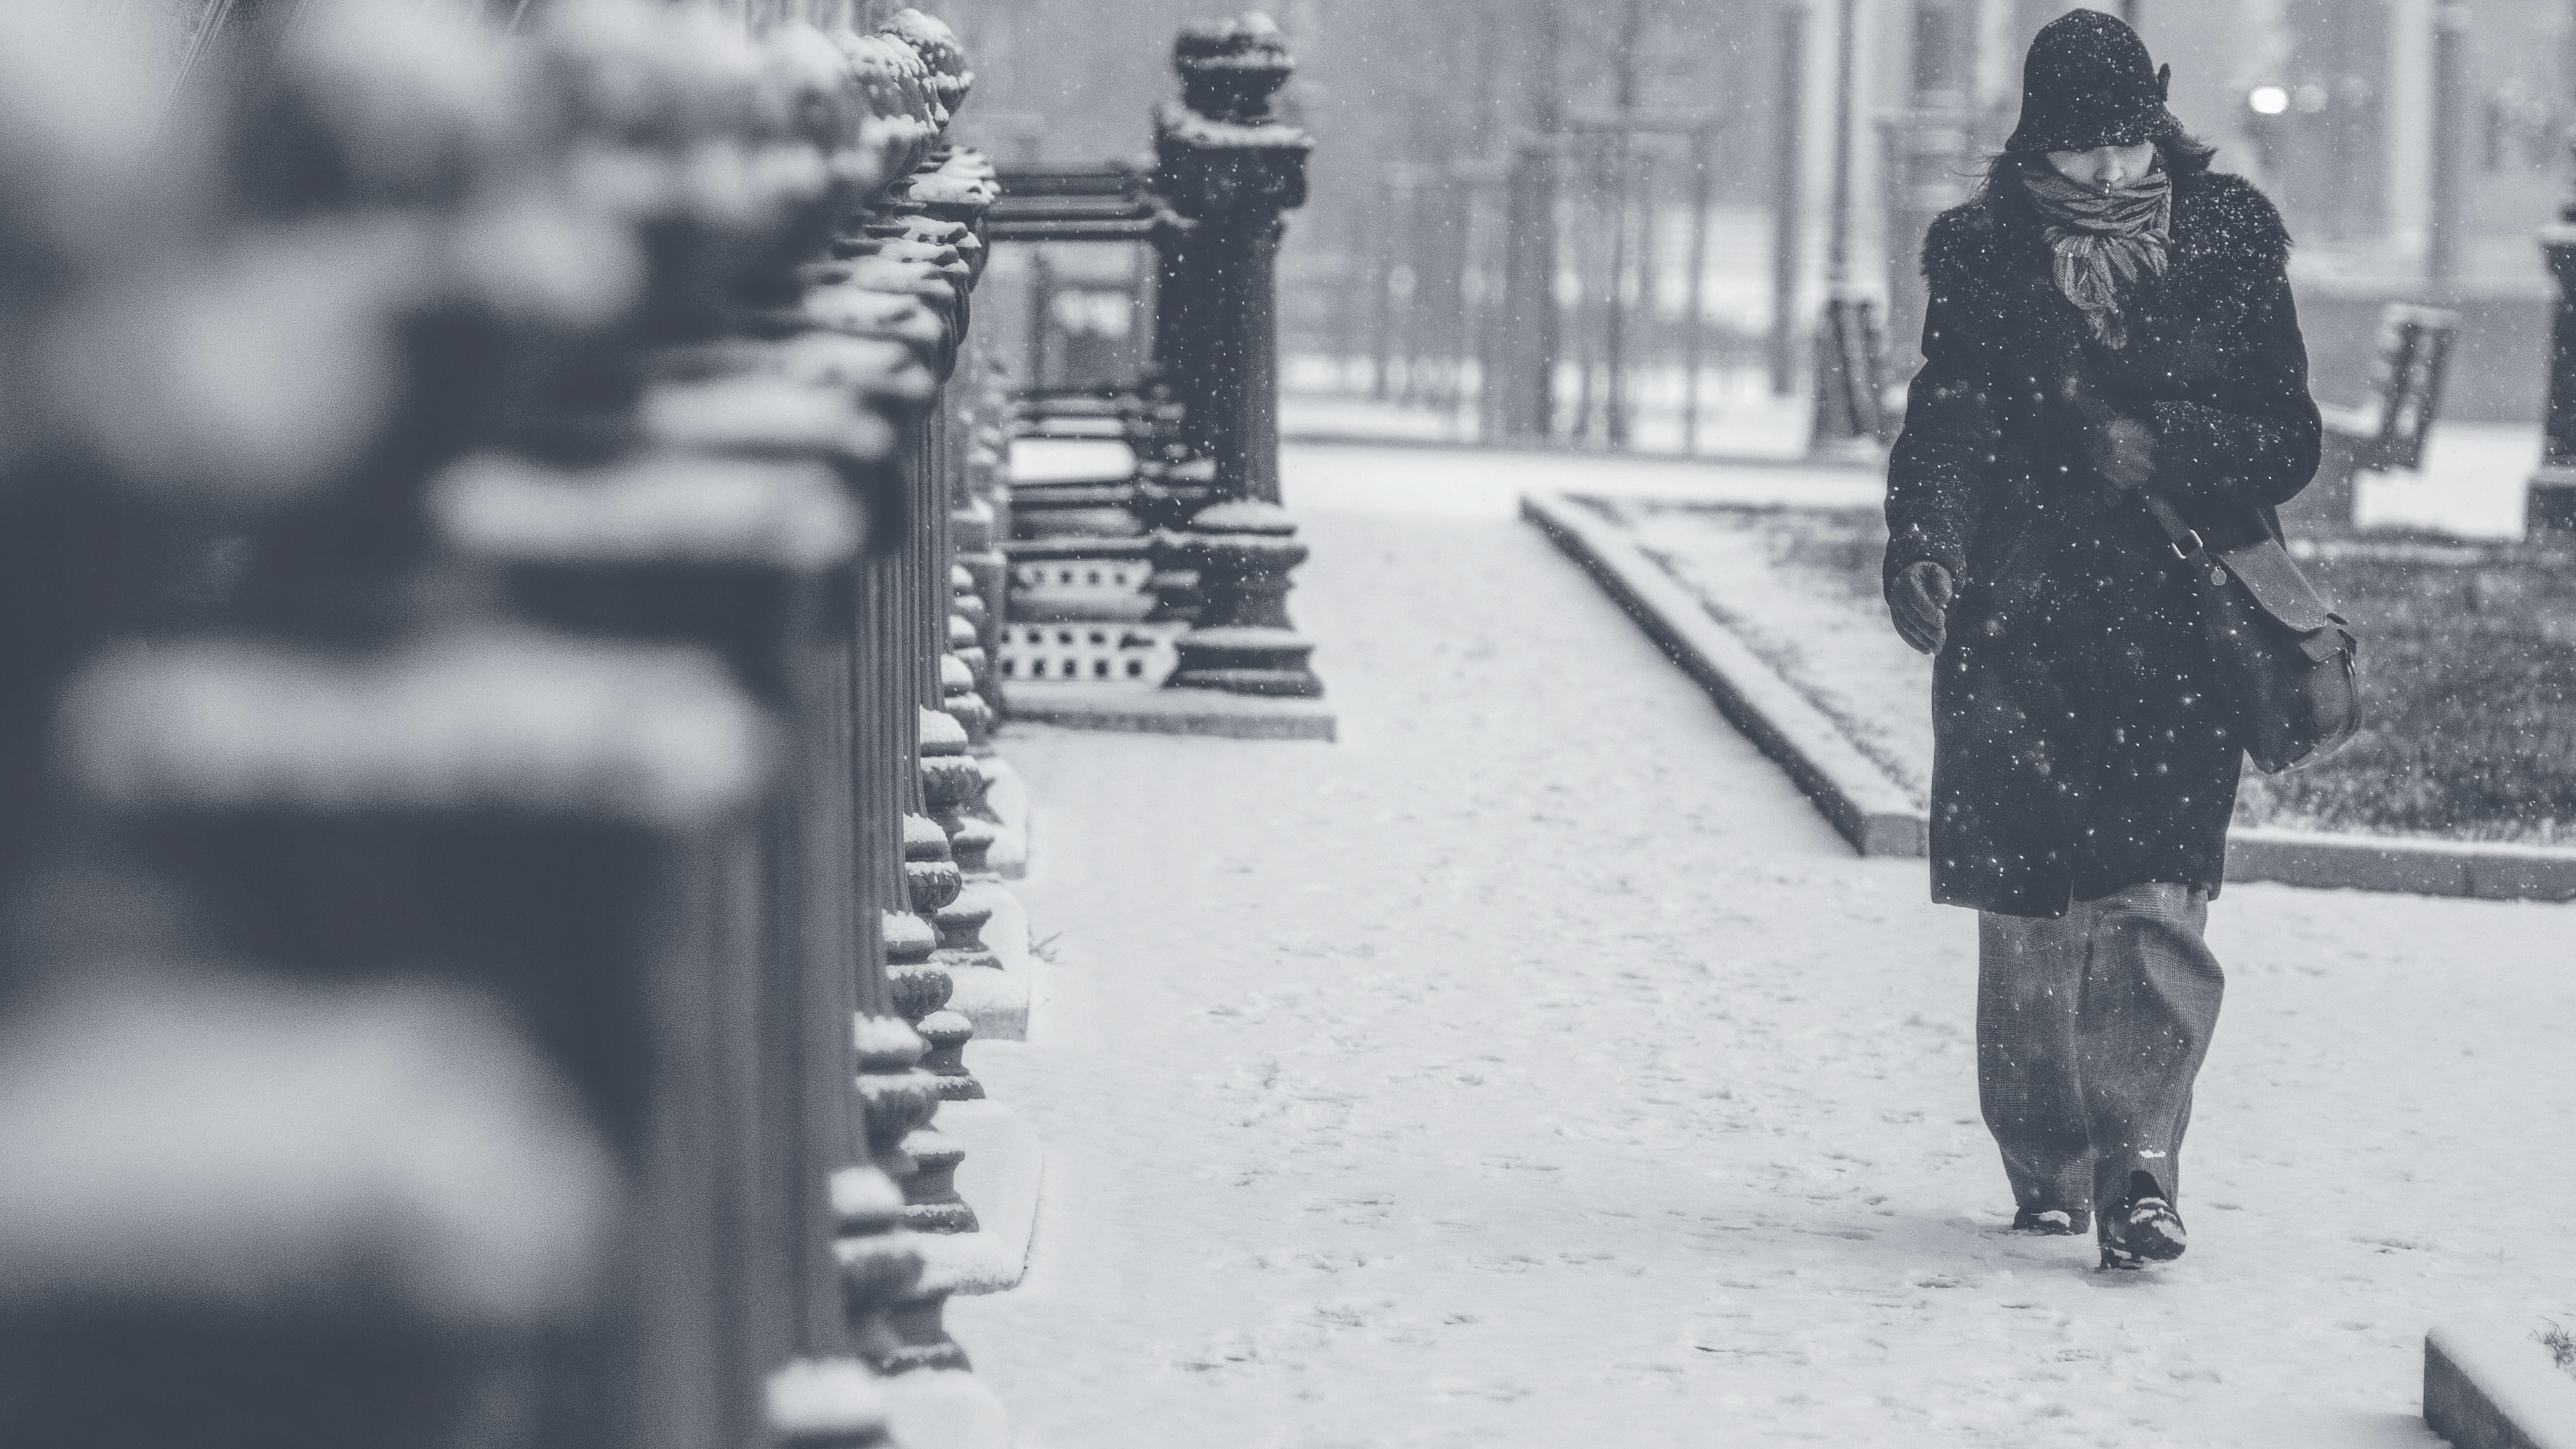 A woman walking the street in Budapest on a snowy day